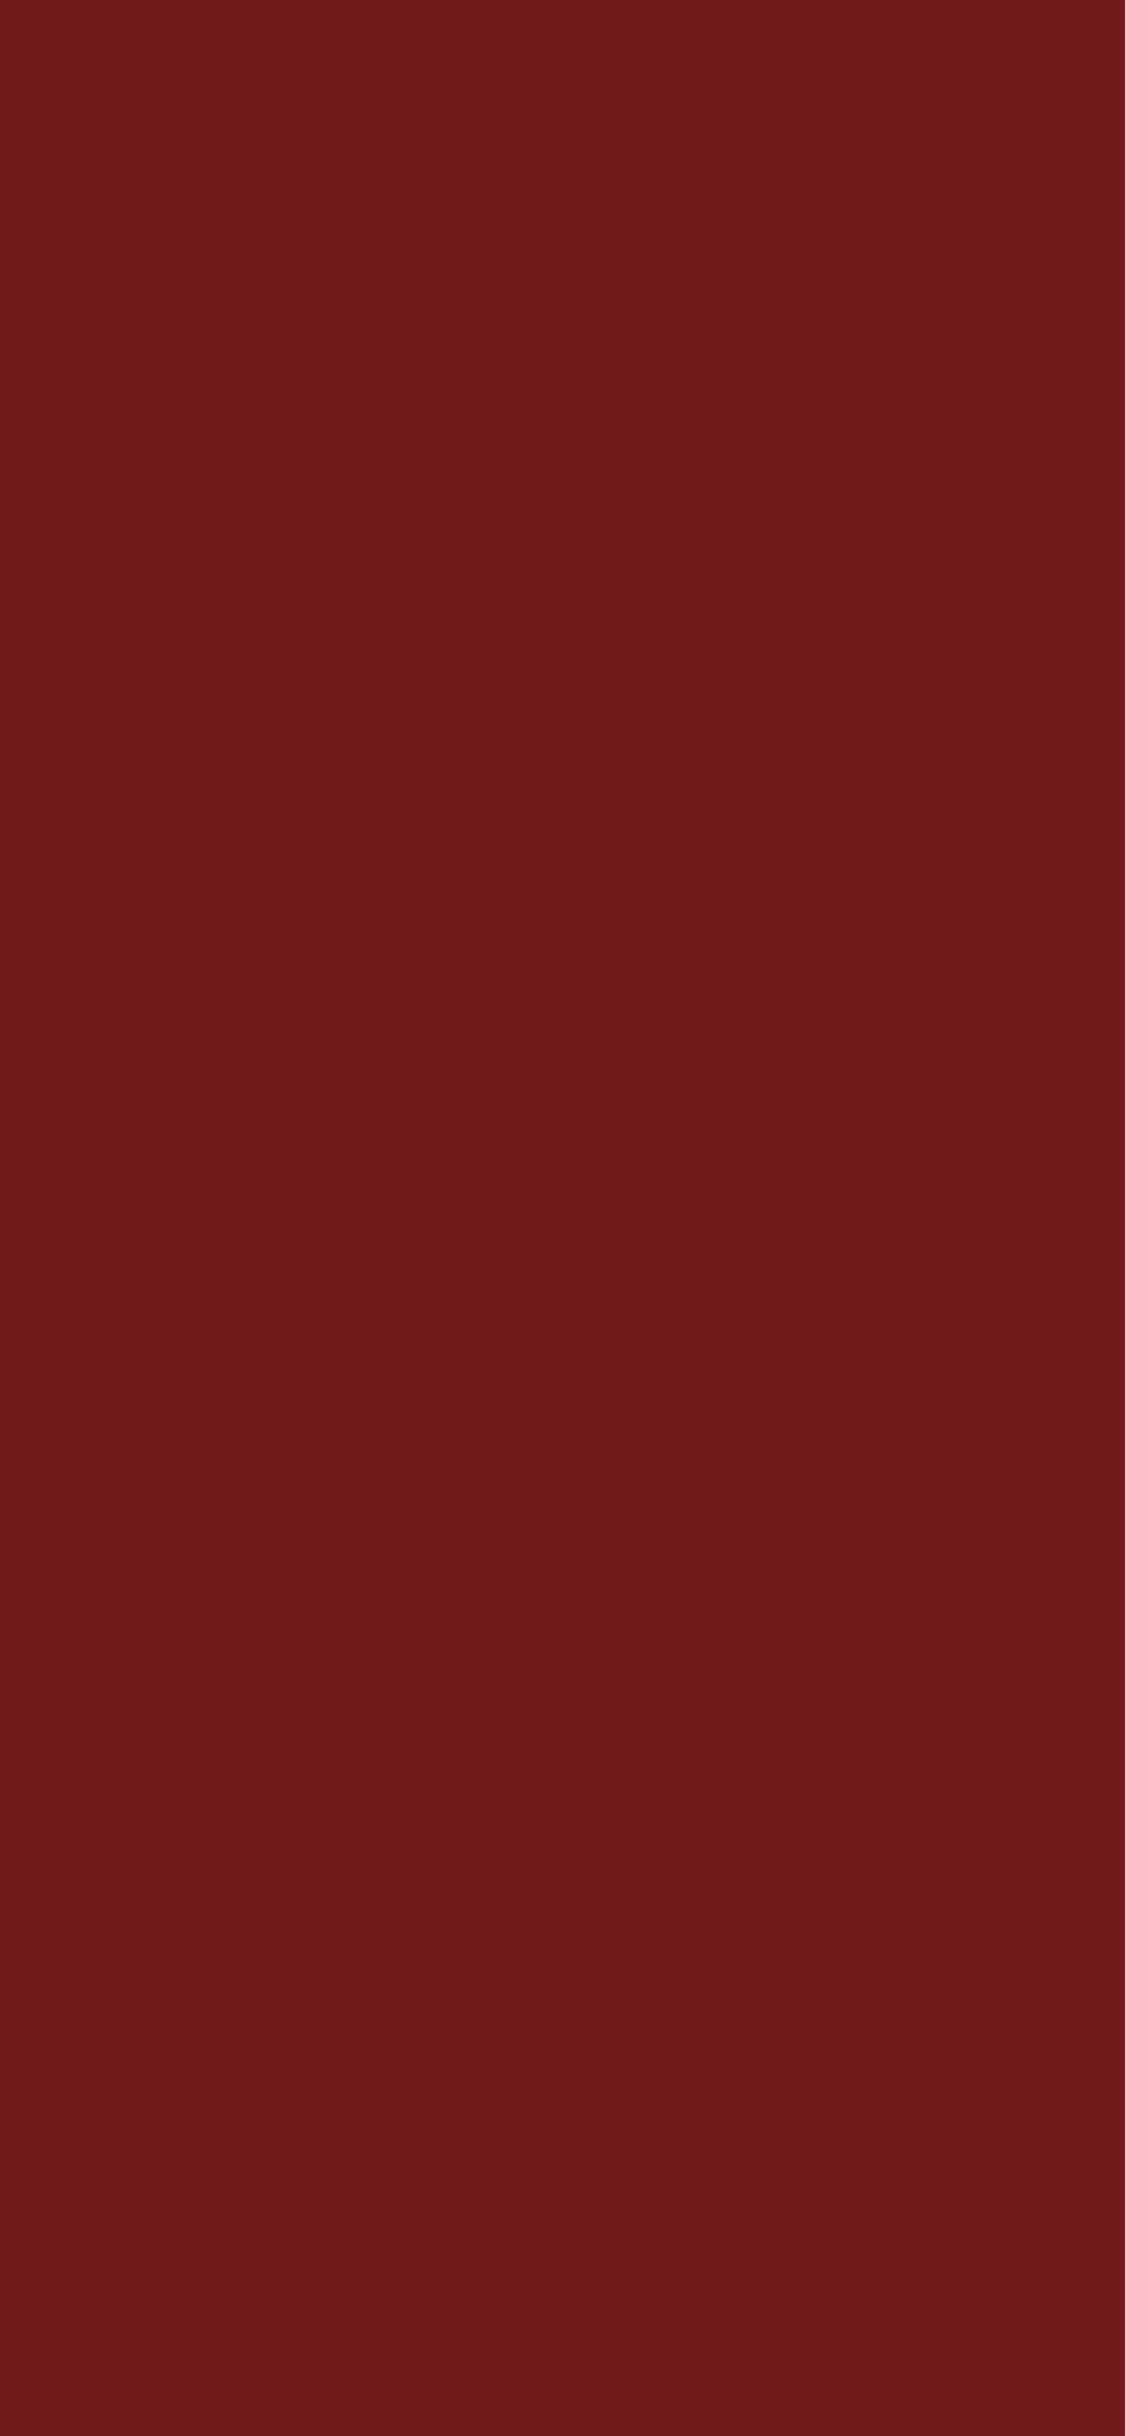 1125x2436 Persian Plum Solid Color Background